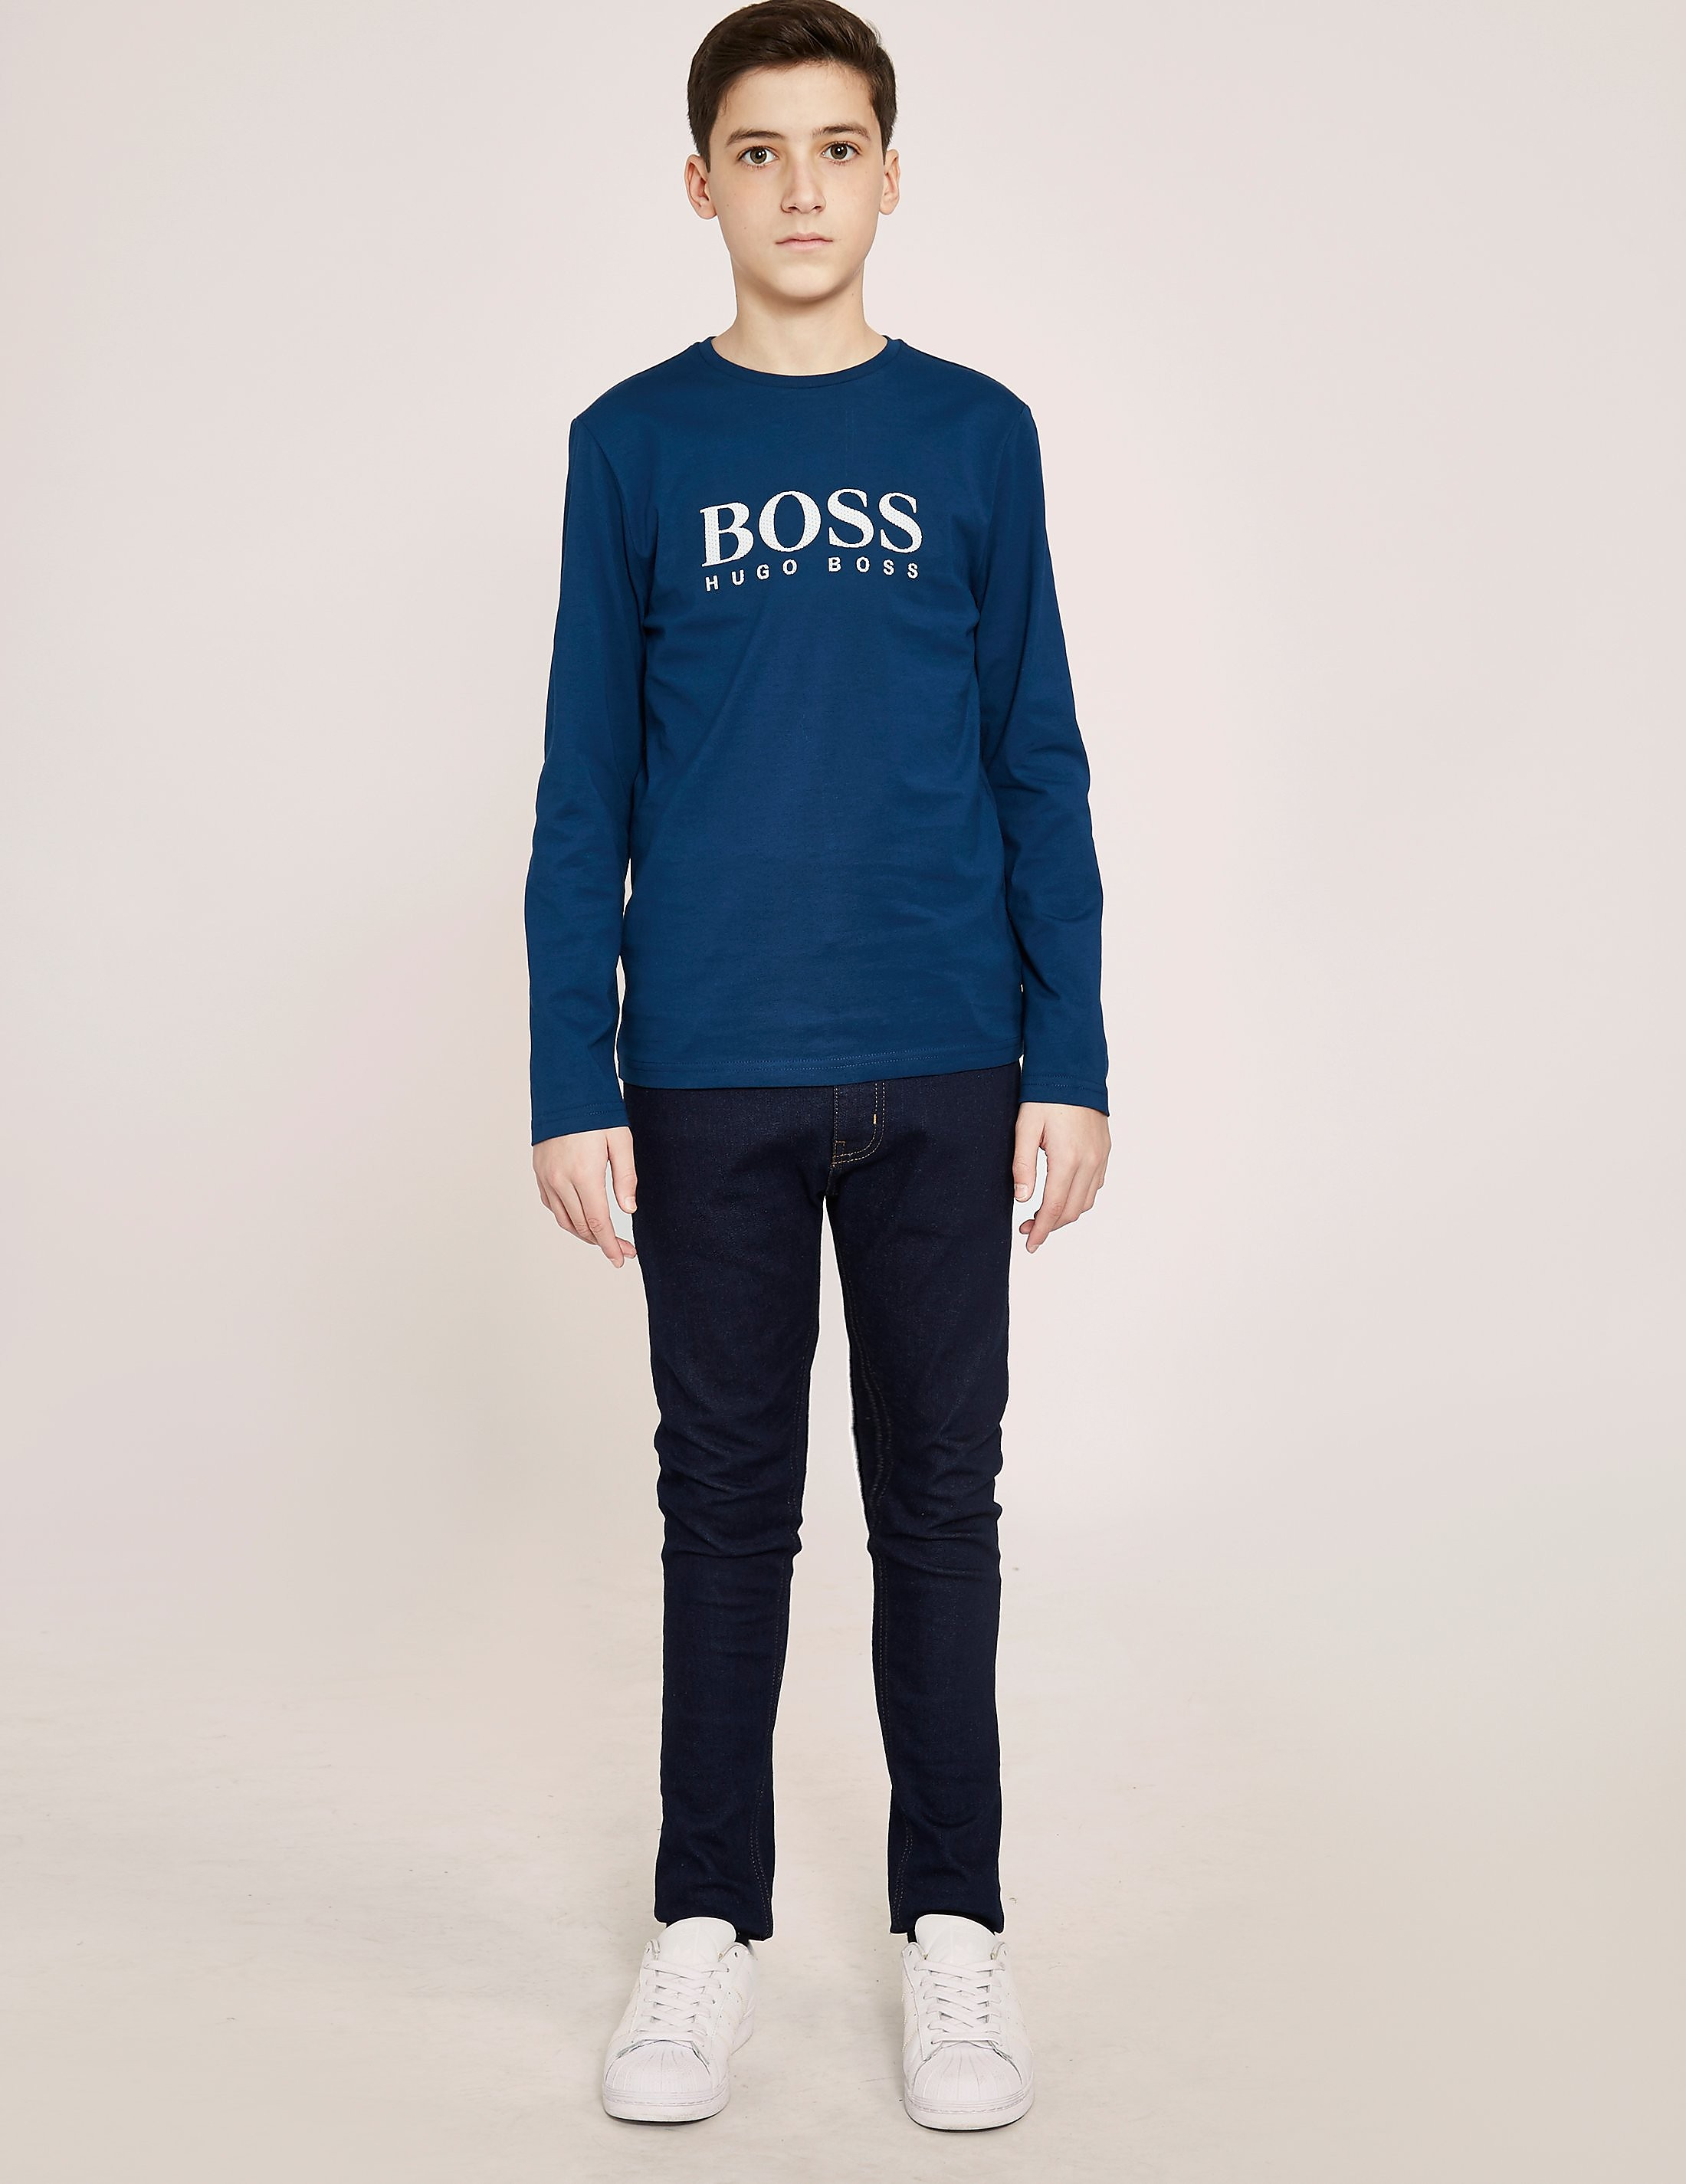 BOSS Long Sleeve Logo T-Shirt